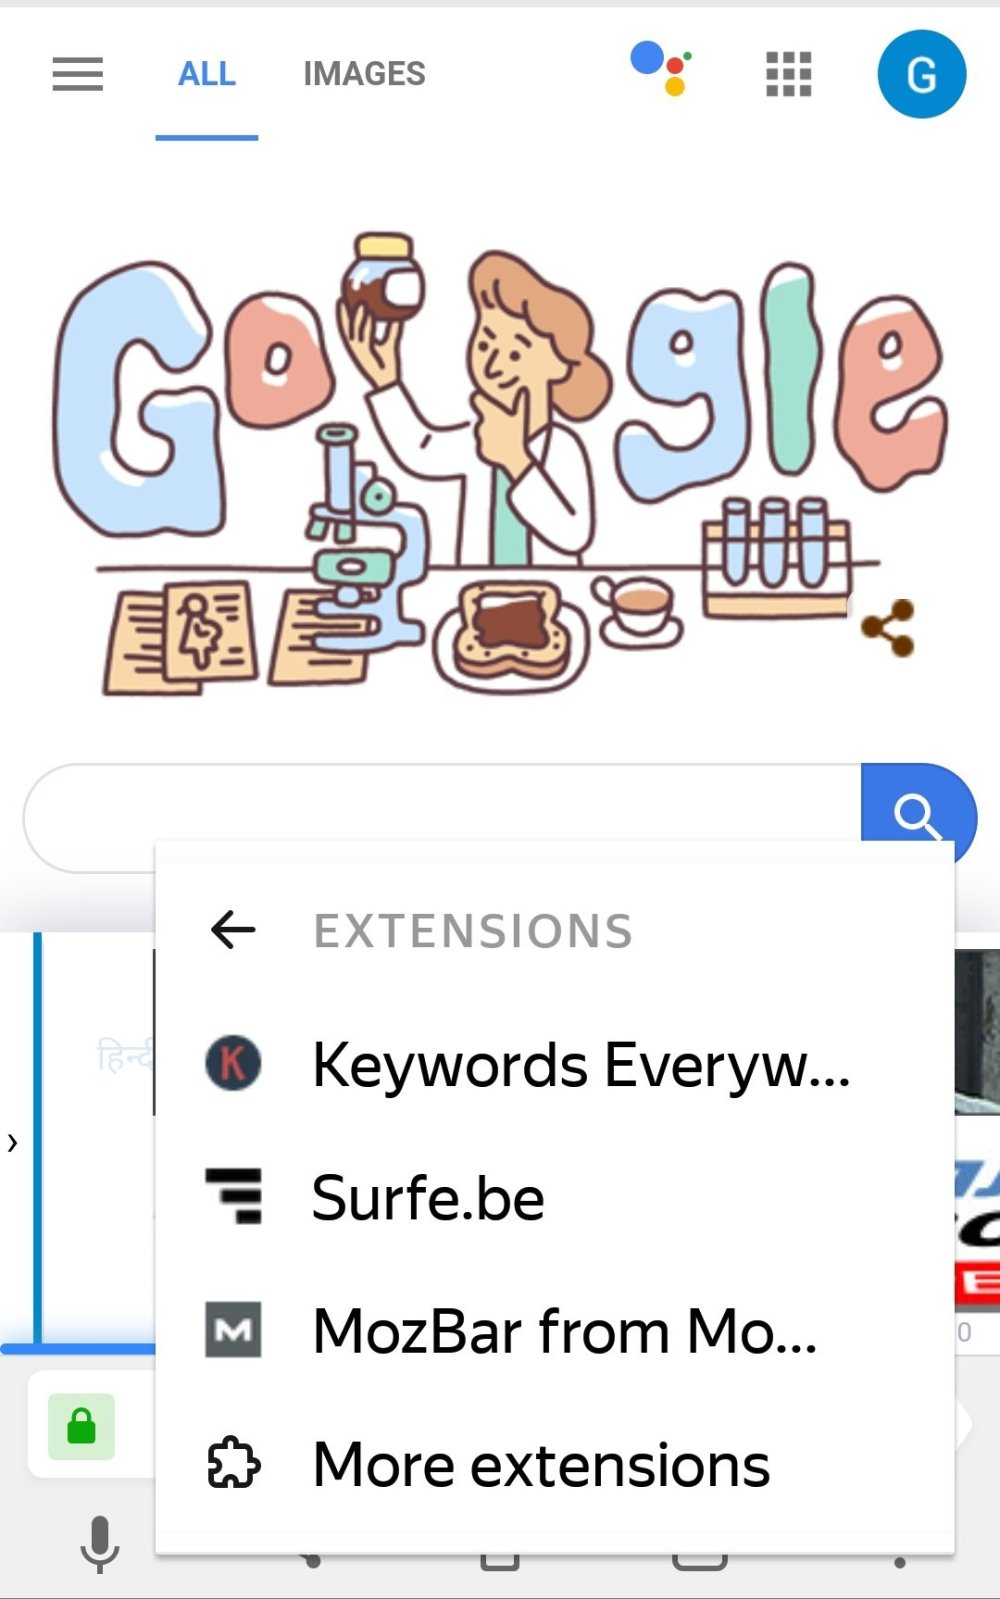 HOW TO USE KEYWORDS EVERYWHERE  ON DESKTOP AND ANDROID MOBILE